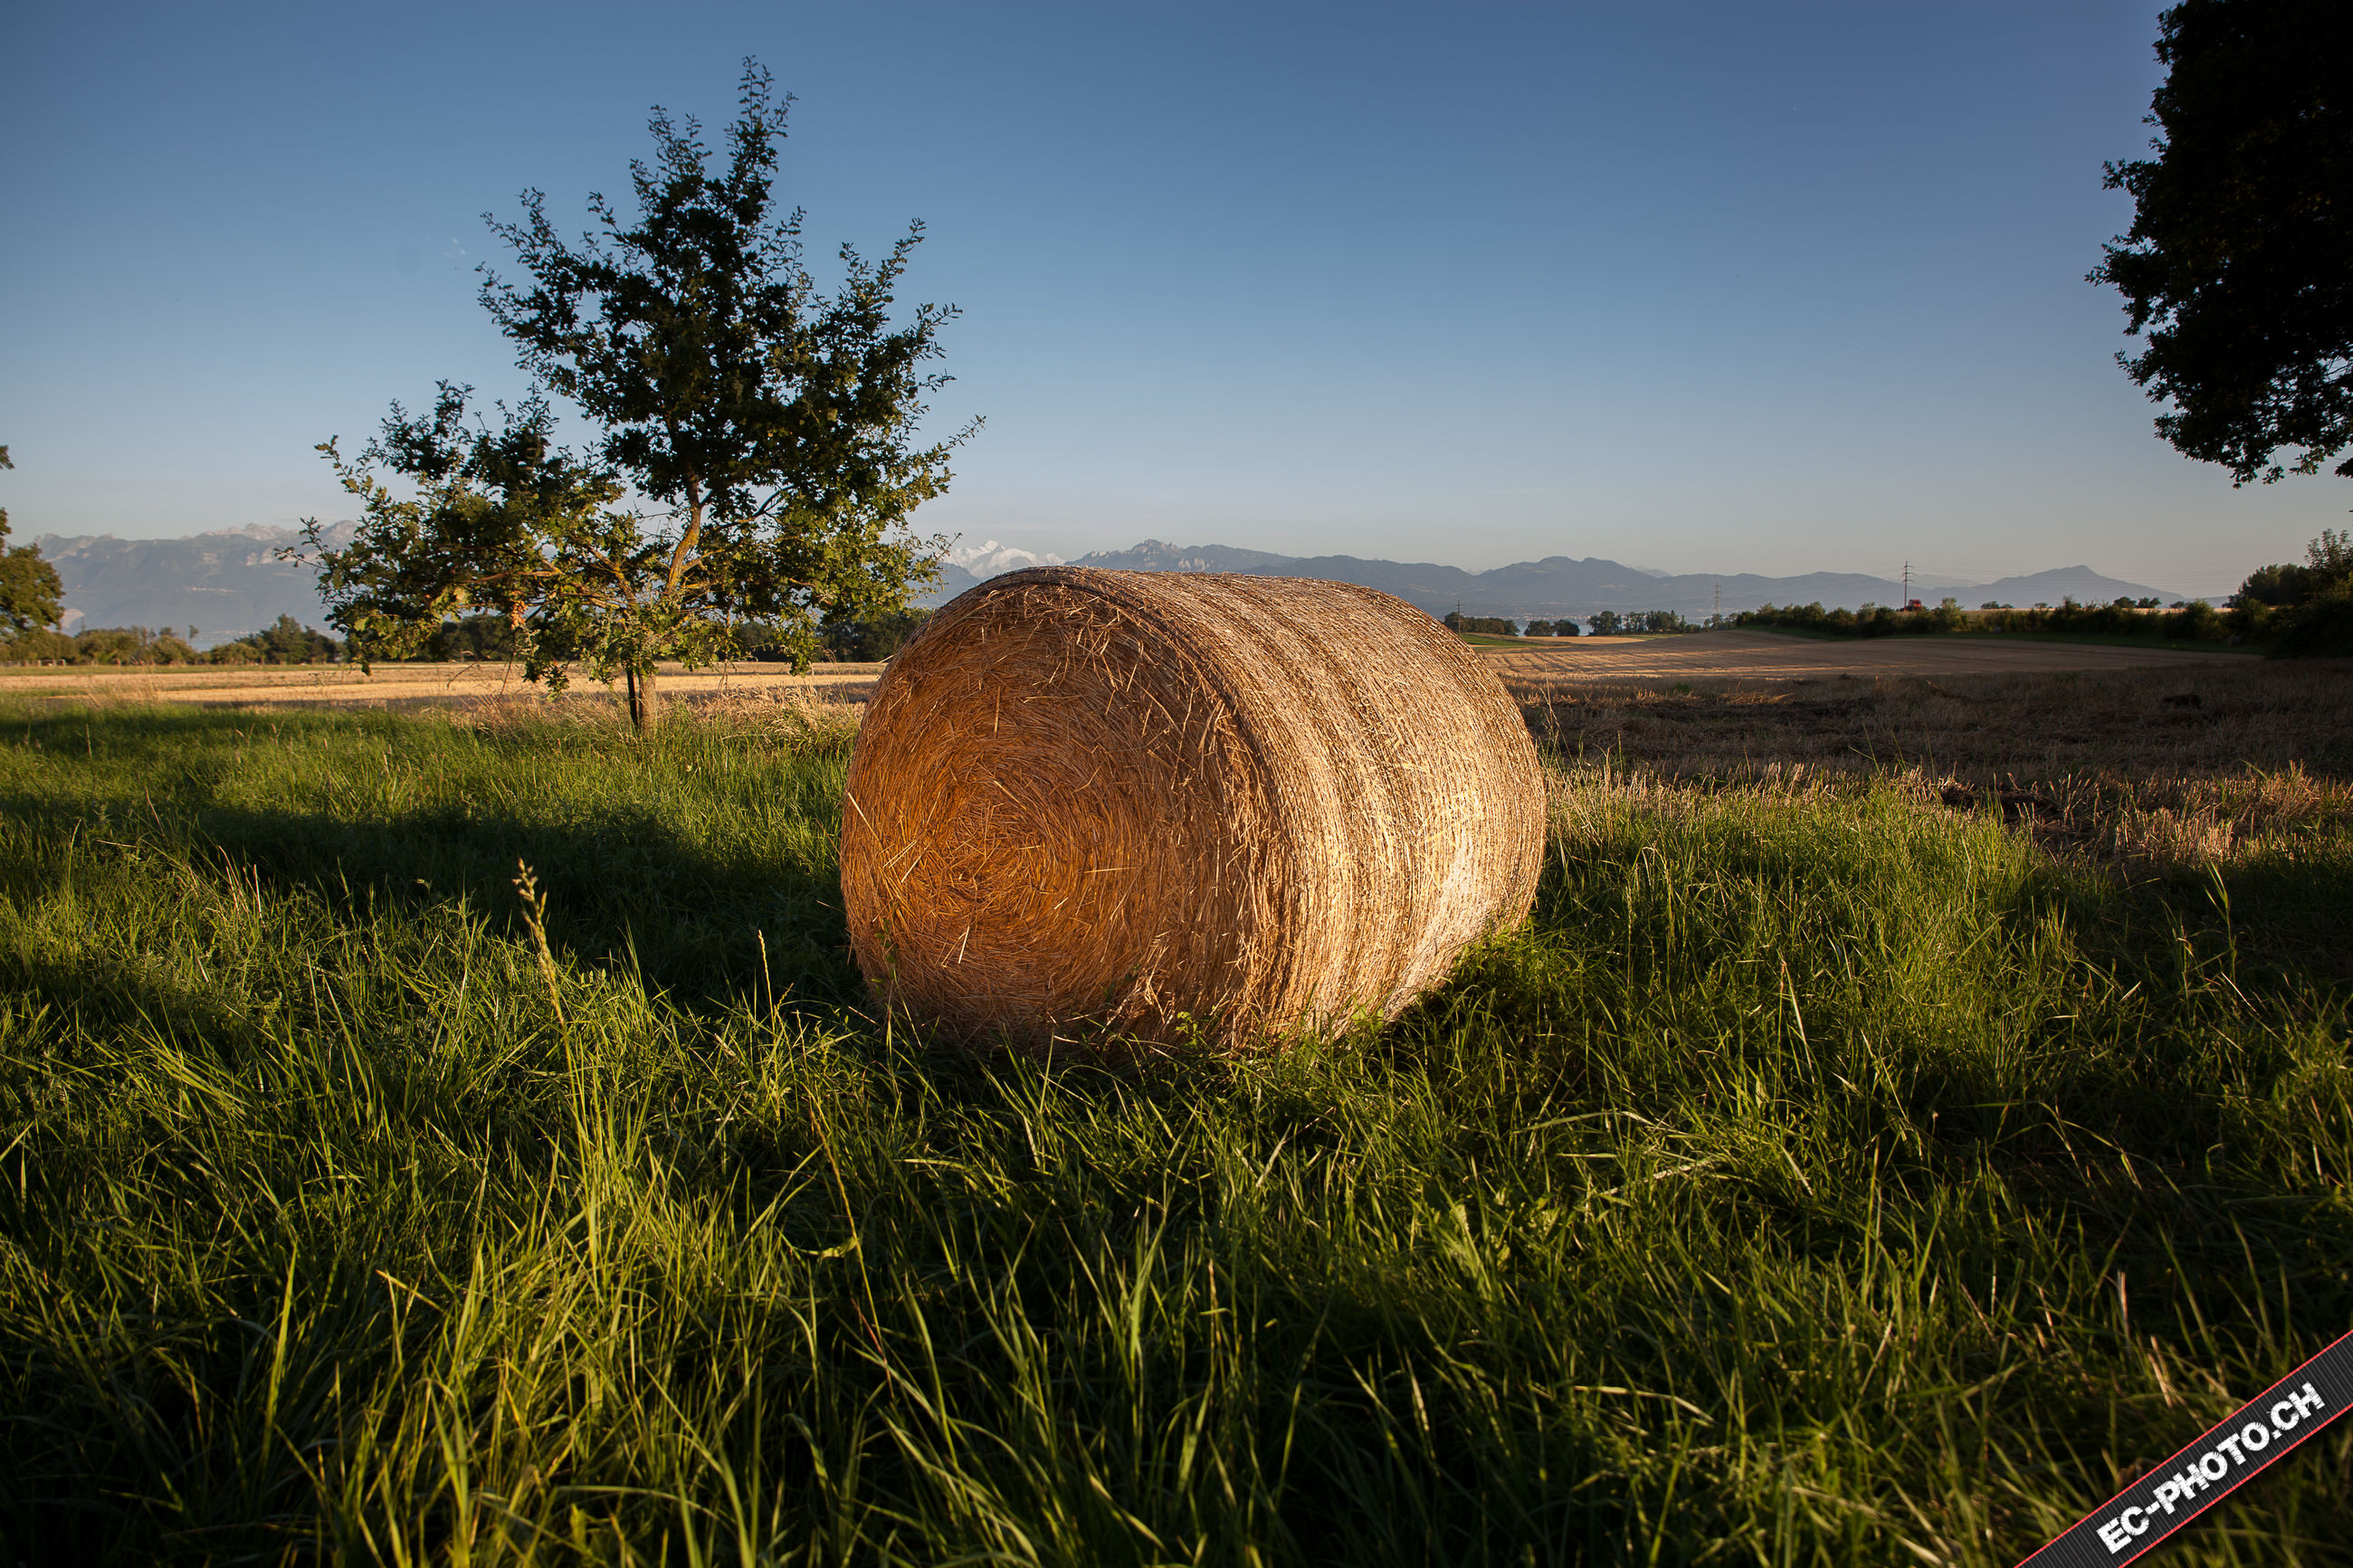 tree, landscape, tranquil scene, clear sky, tranquility, grass, rural scene, field, scenics, nature, growth, farm, agriculture, horizon over land, beauty in nature, harvesting, sky, green color, day, blue, crop, summer, non-urban scene, outdoors, no people, mountain, single tree, cultivated land, remote, grassy, solitude